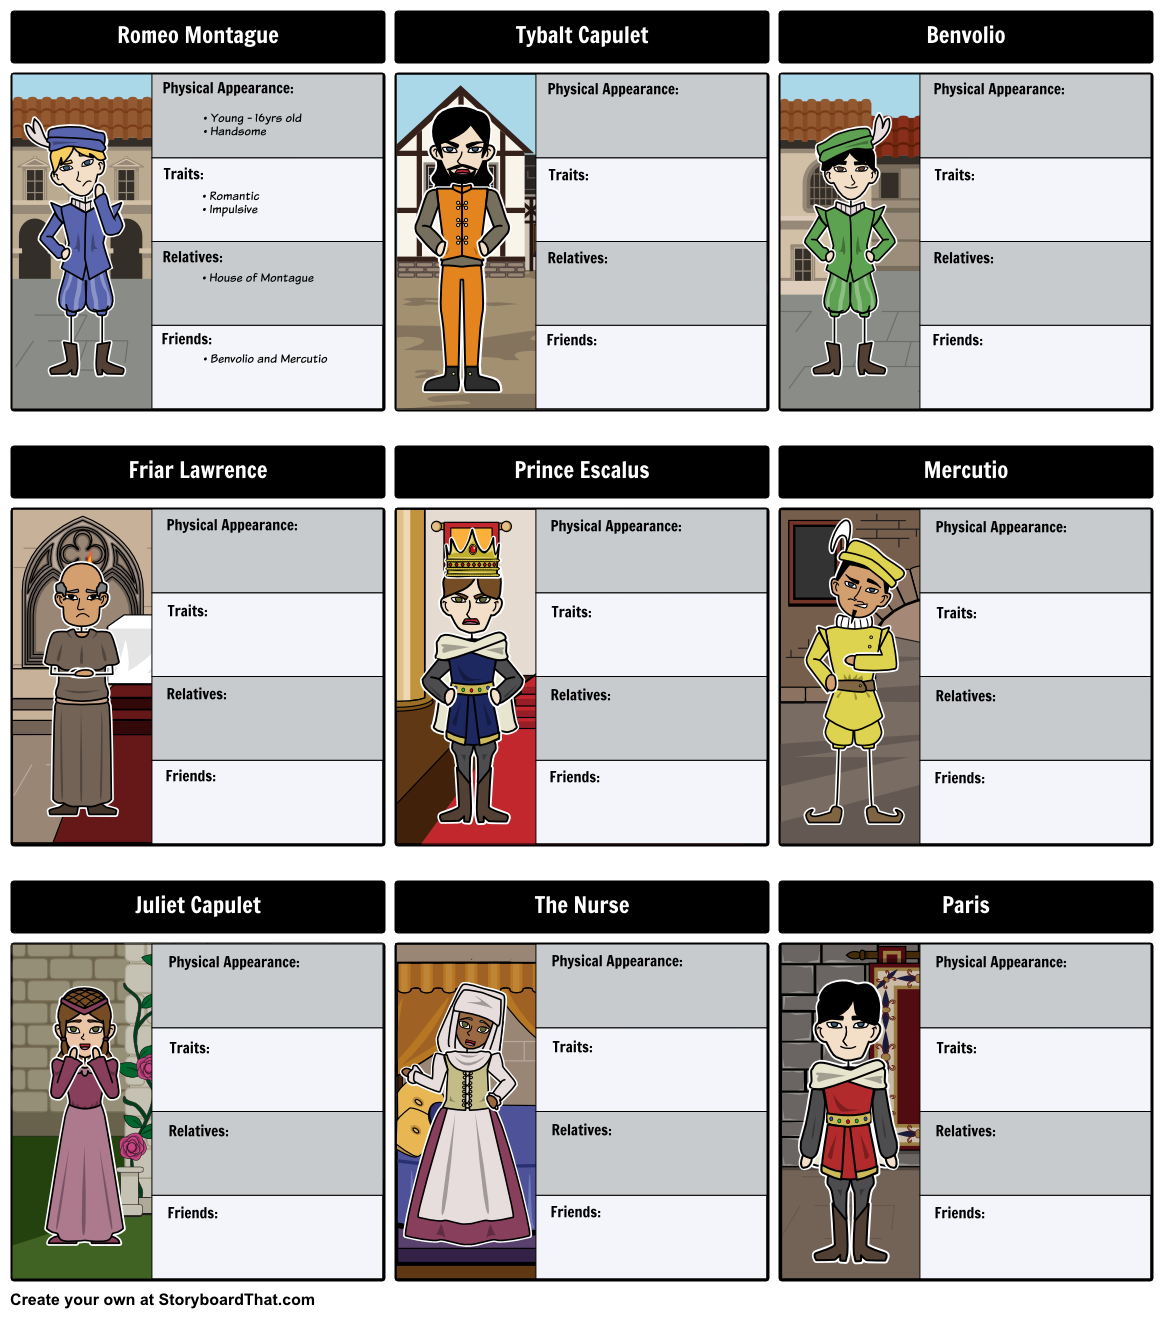 romeo and juliet vocabulary words activities and quizzes bundle the tragedy of romeo and juliet character map a complete character map for the